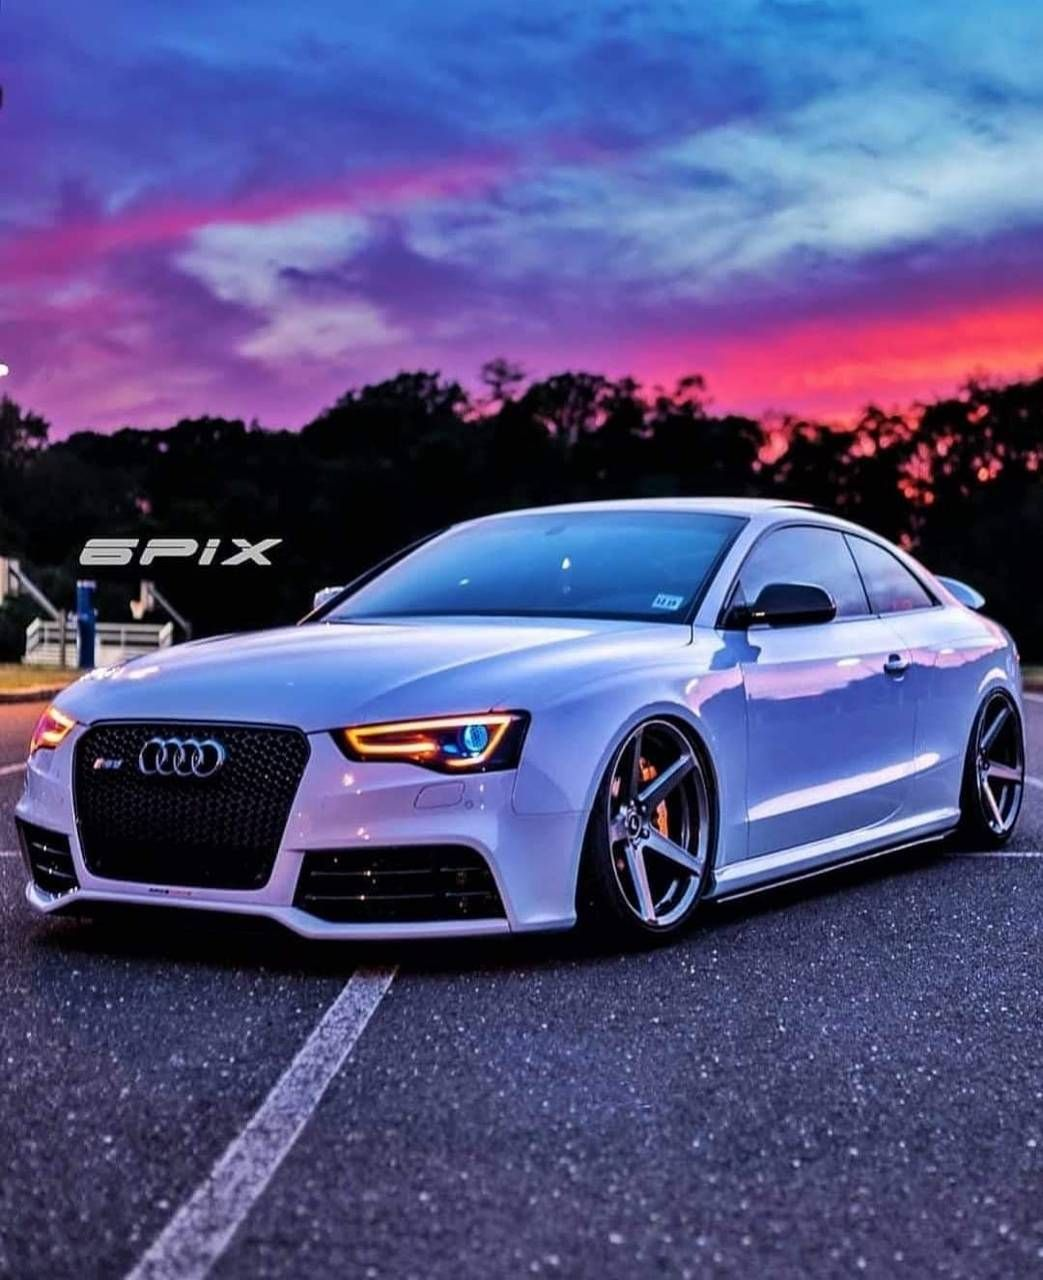 Download Audi A5 Wallpaper By Mahryu5 54 Free On Zedge Now Browse Millions Of Popular Audi Wallpapers Sports Cars Luxury Audi Sports Car Luxury Cars Audi